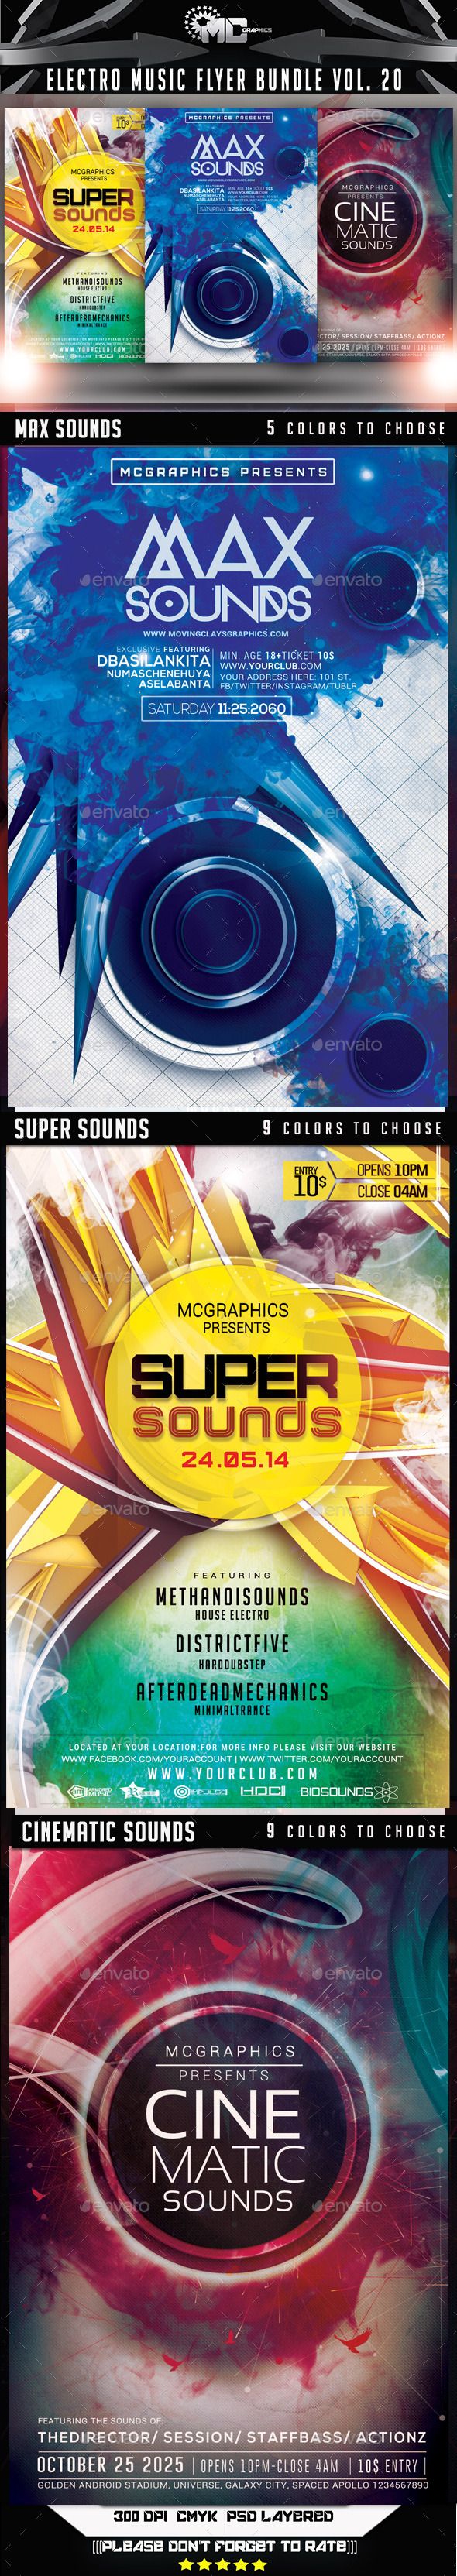 Electro Music Flyer Bundle Vol. 20 - Flyers Print Templates